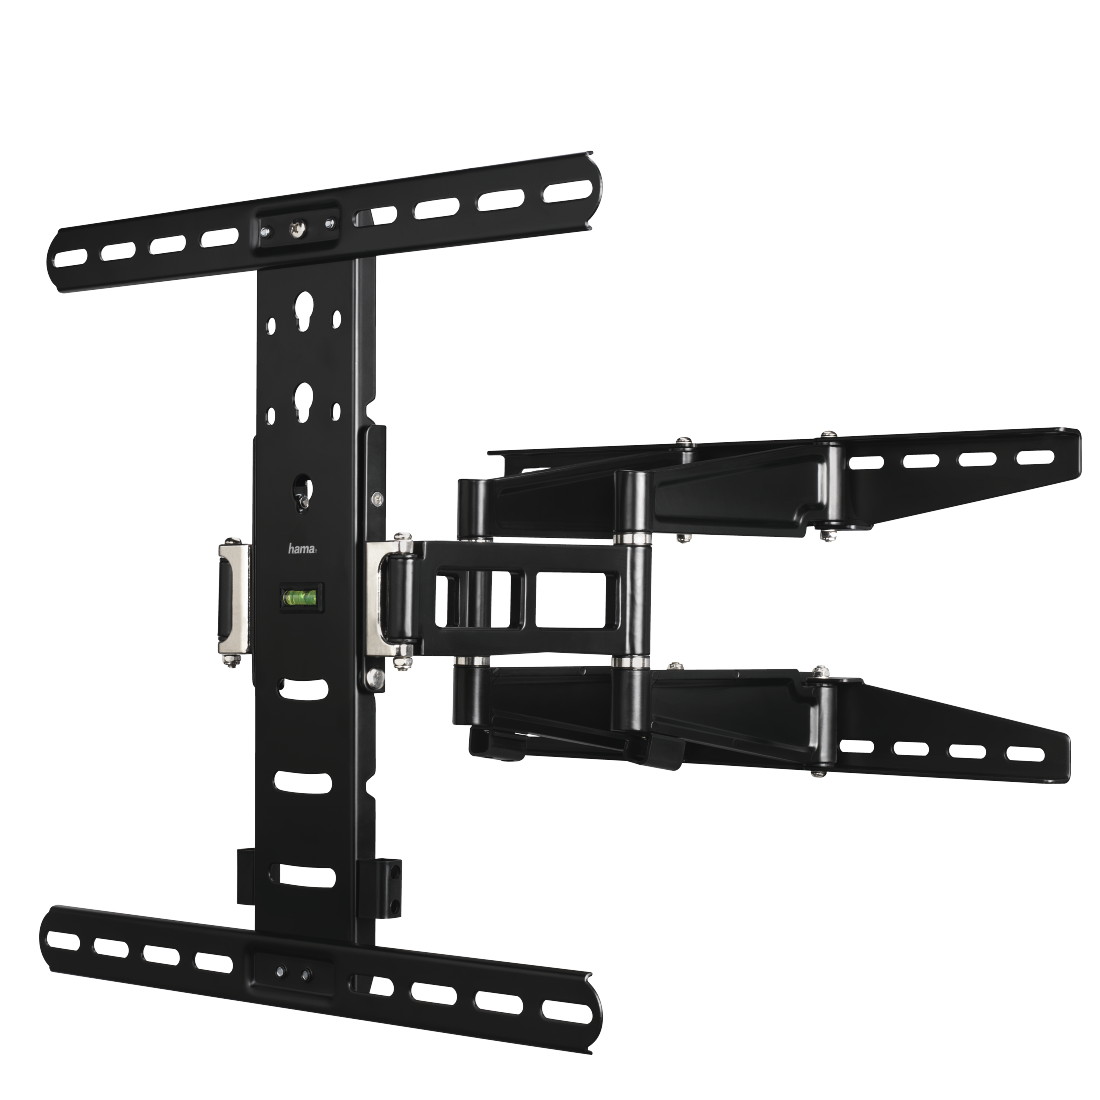 Hama 108756 TV Wall Bracket